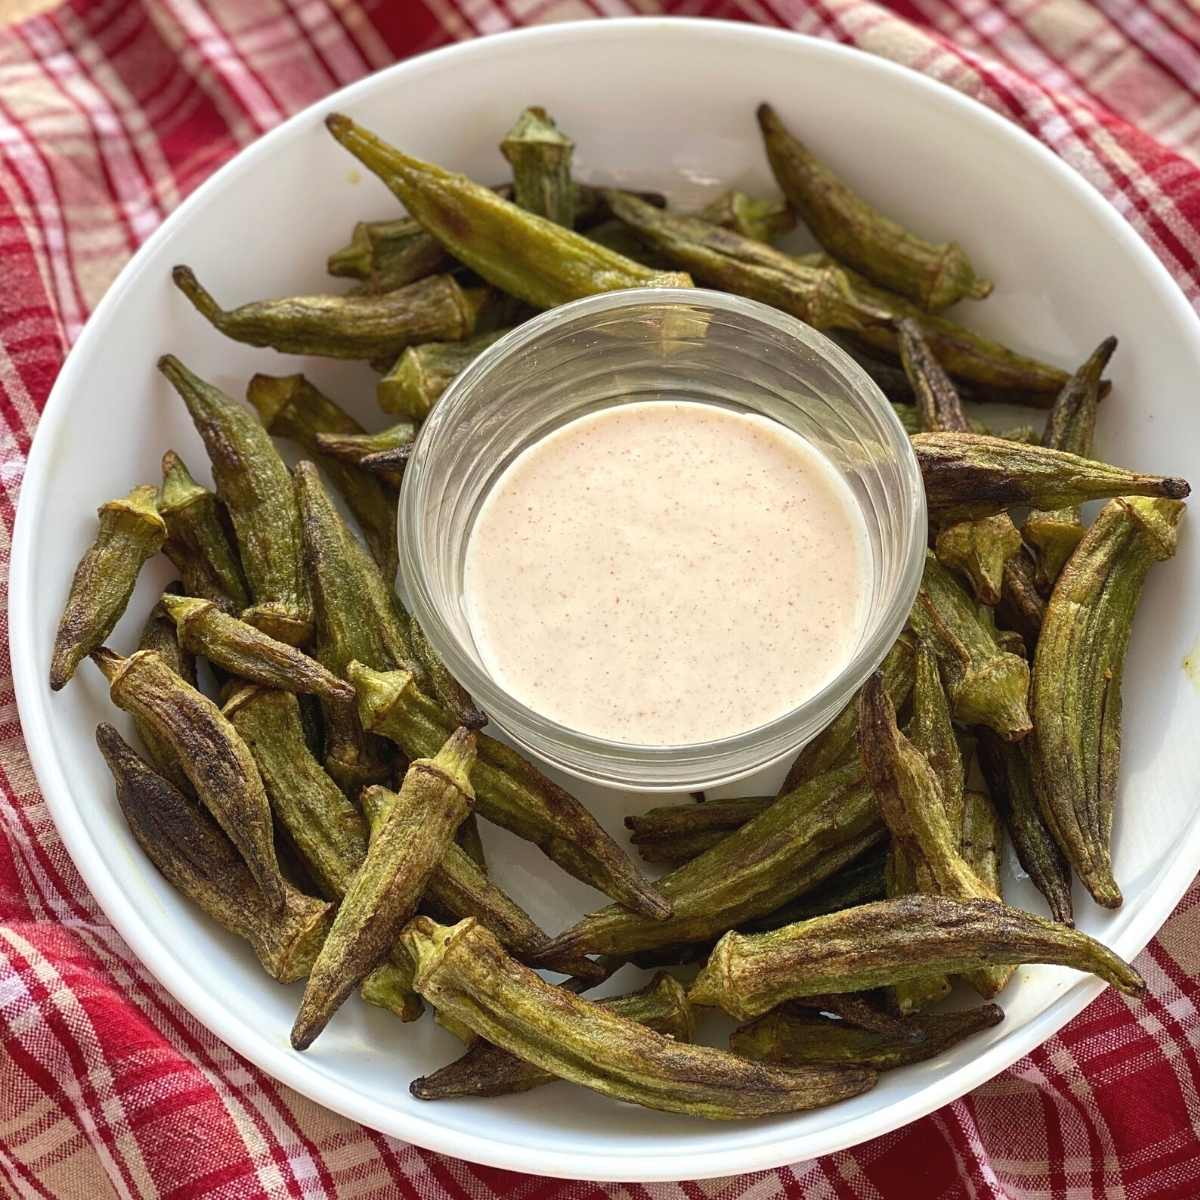 Okra fries on a plate surrounding a bowl of aioli dipping sauce.